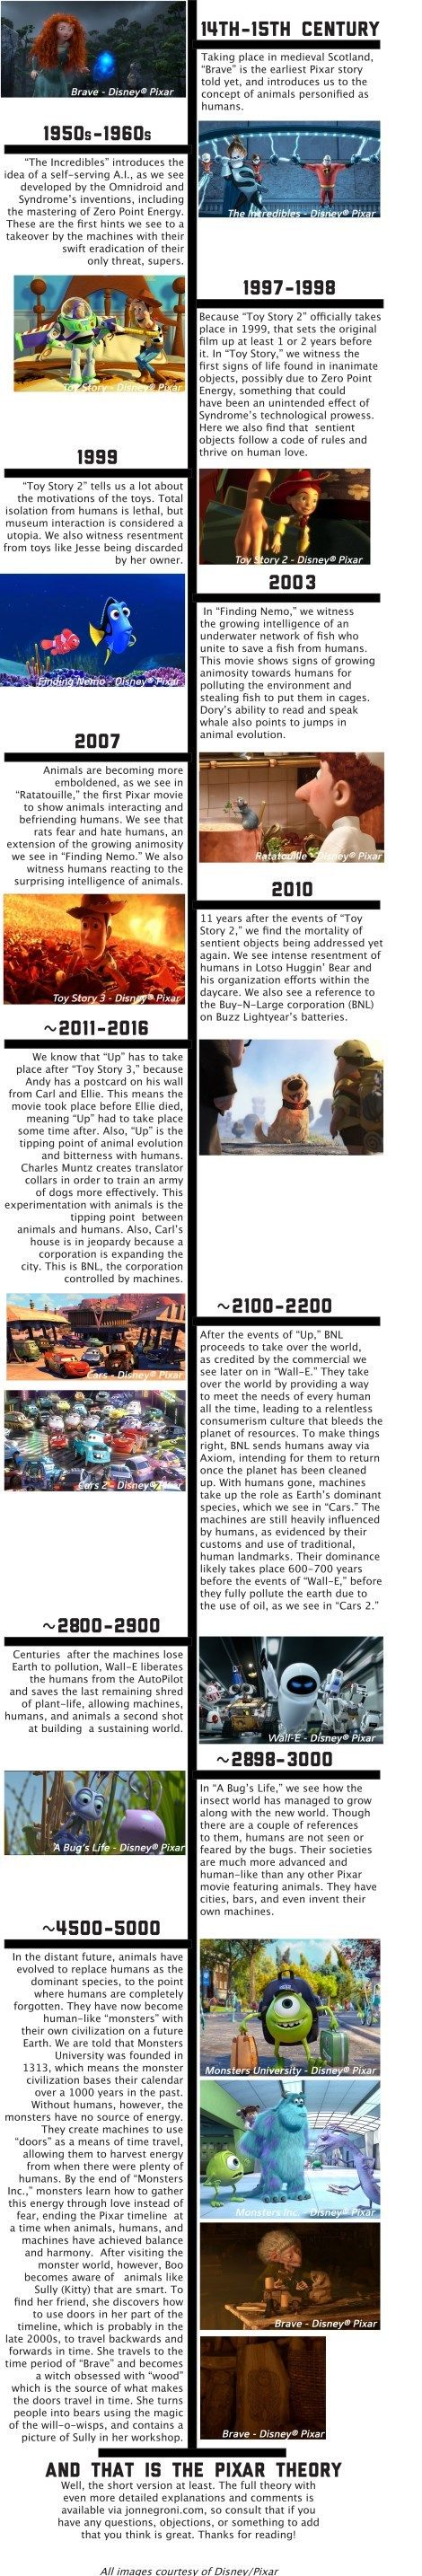 Are All Pixar Movies in the Same Universe?   Interesting theories.